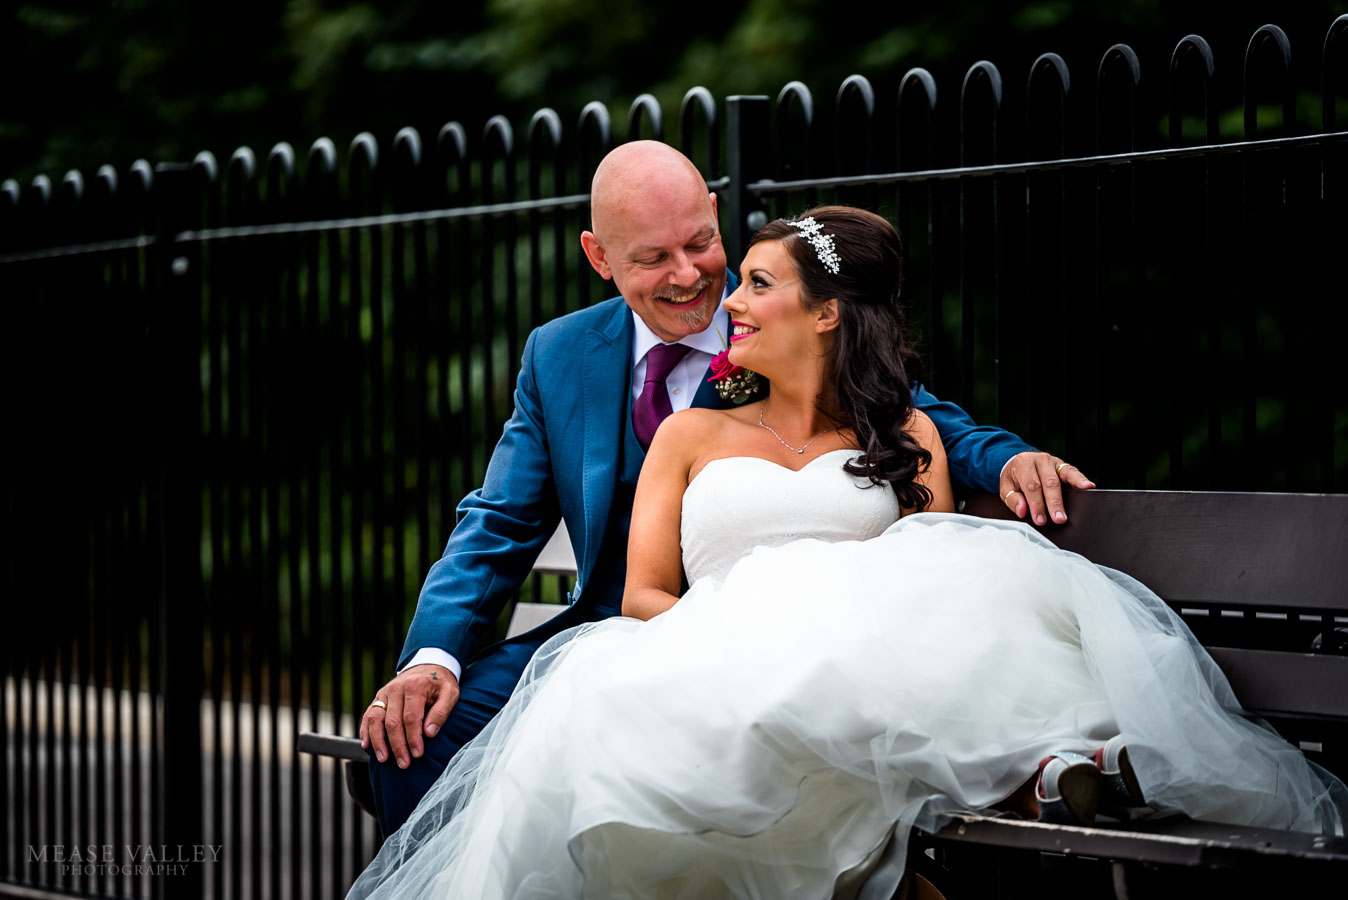 Photograph of bride and groom sitting on a bench in Solihull